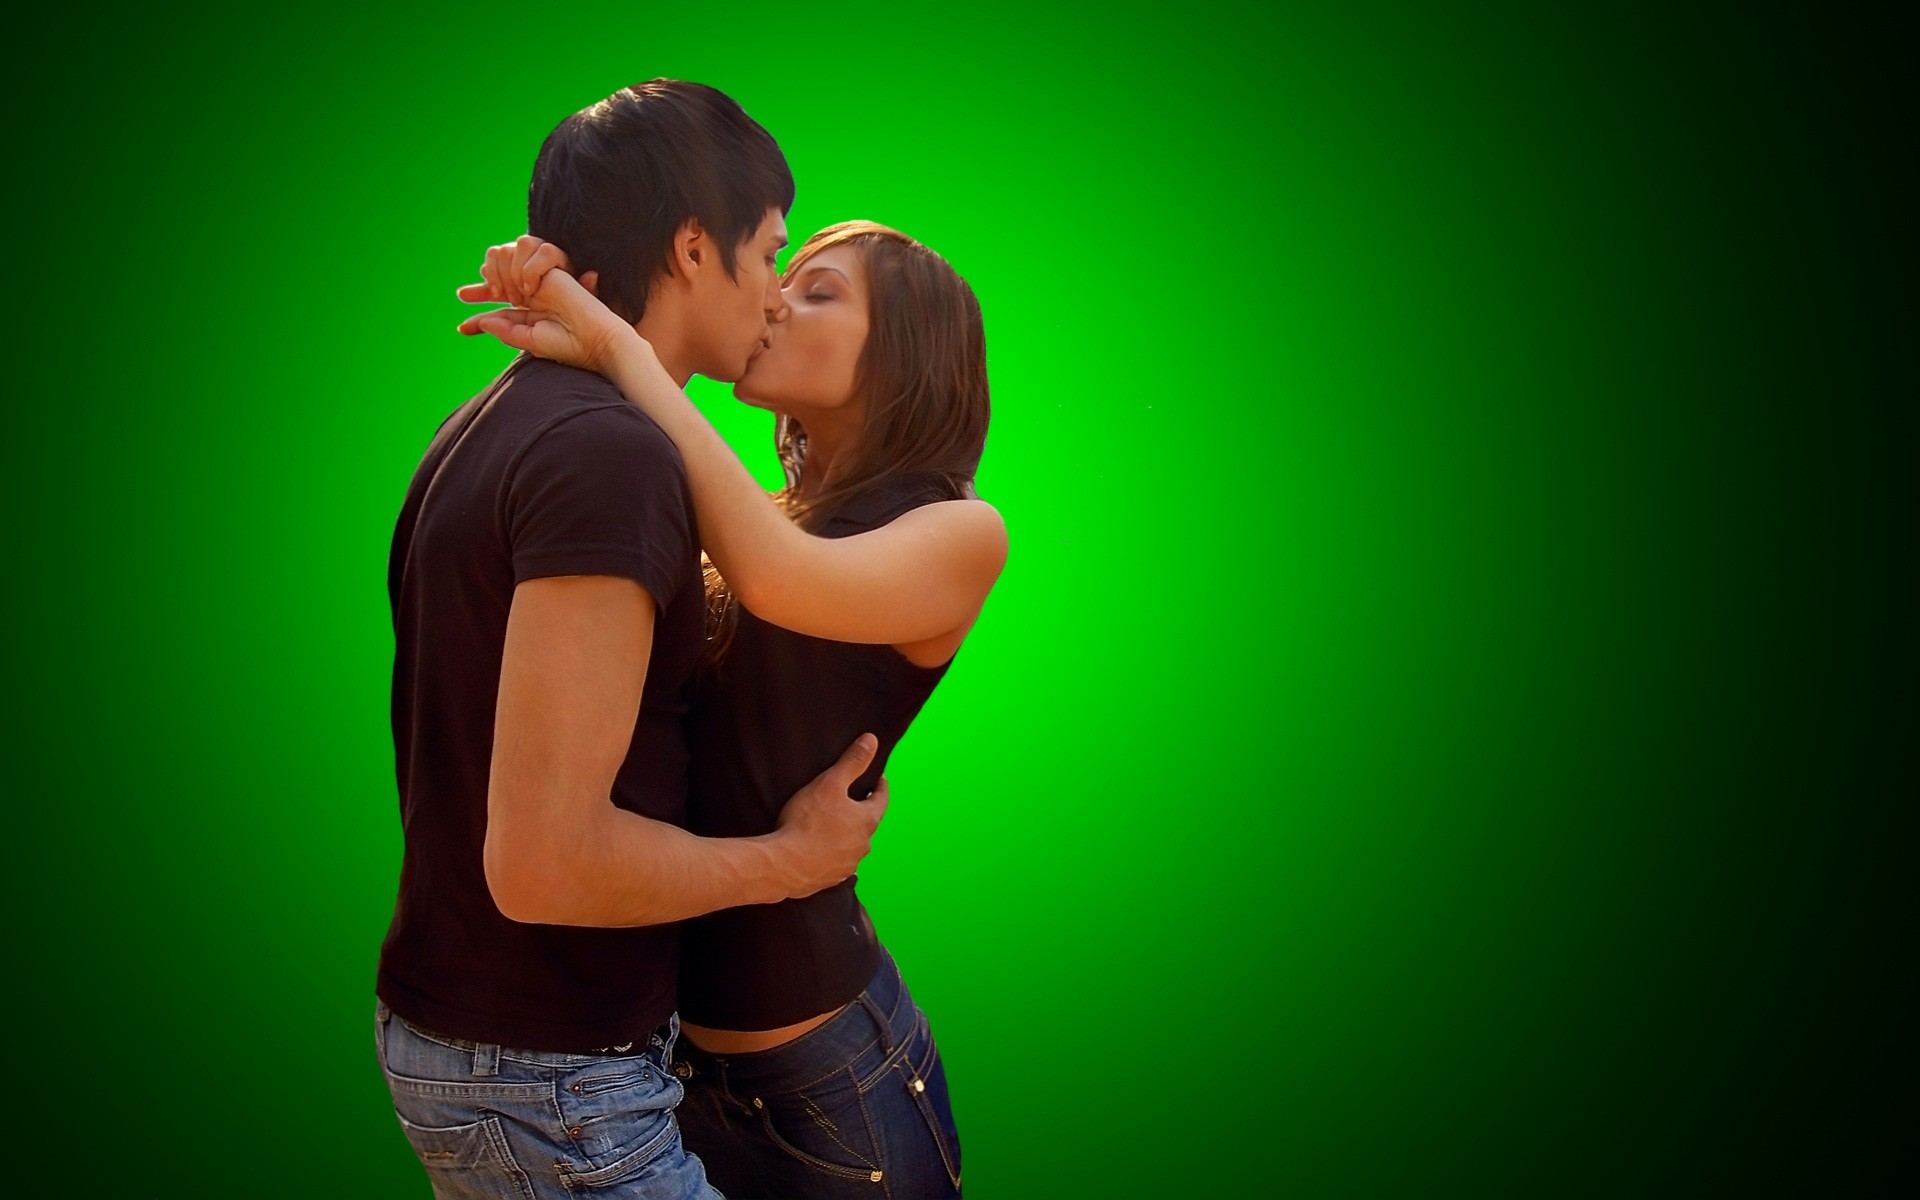 kissing wallpapers hd (70+ background pictures)